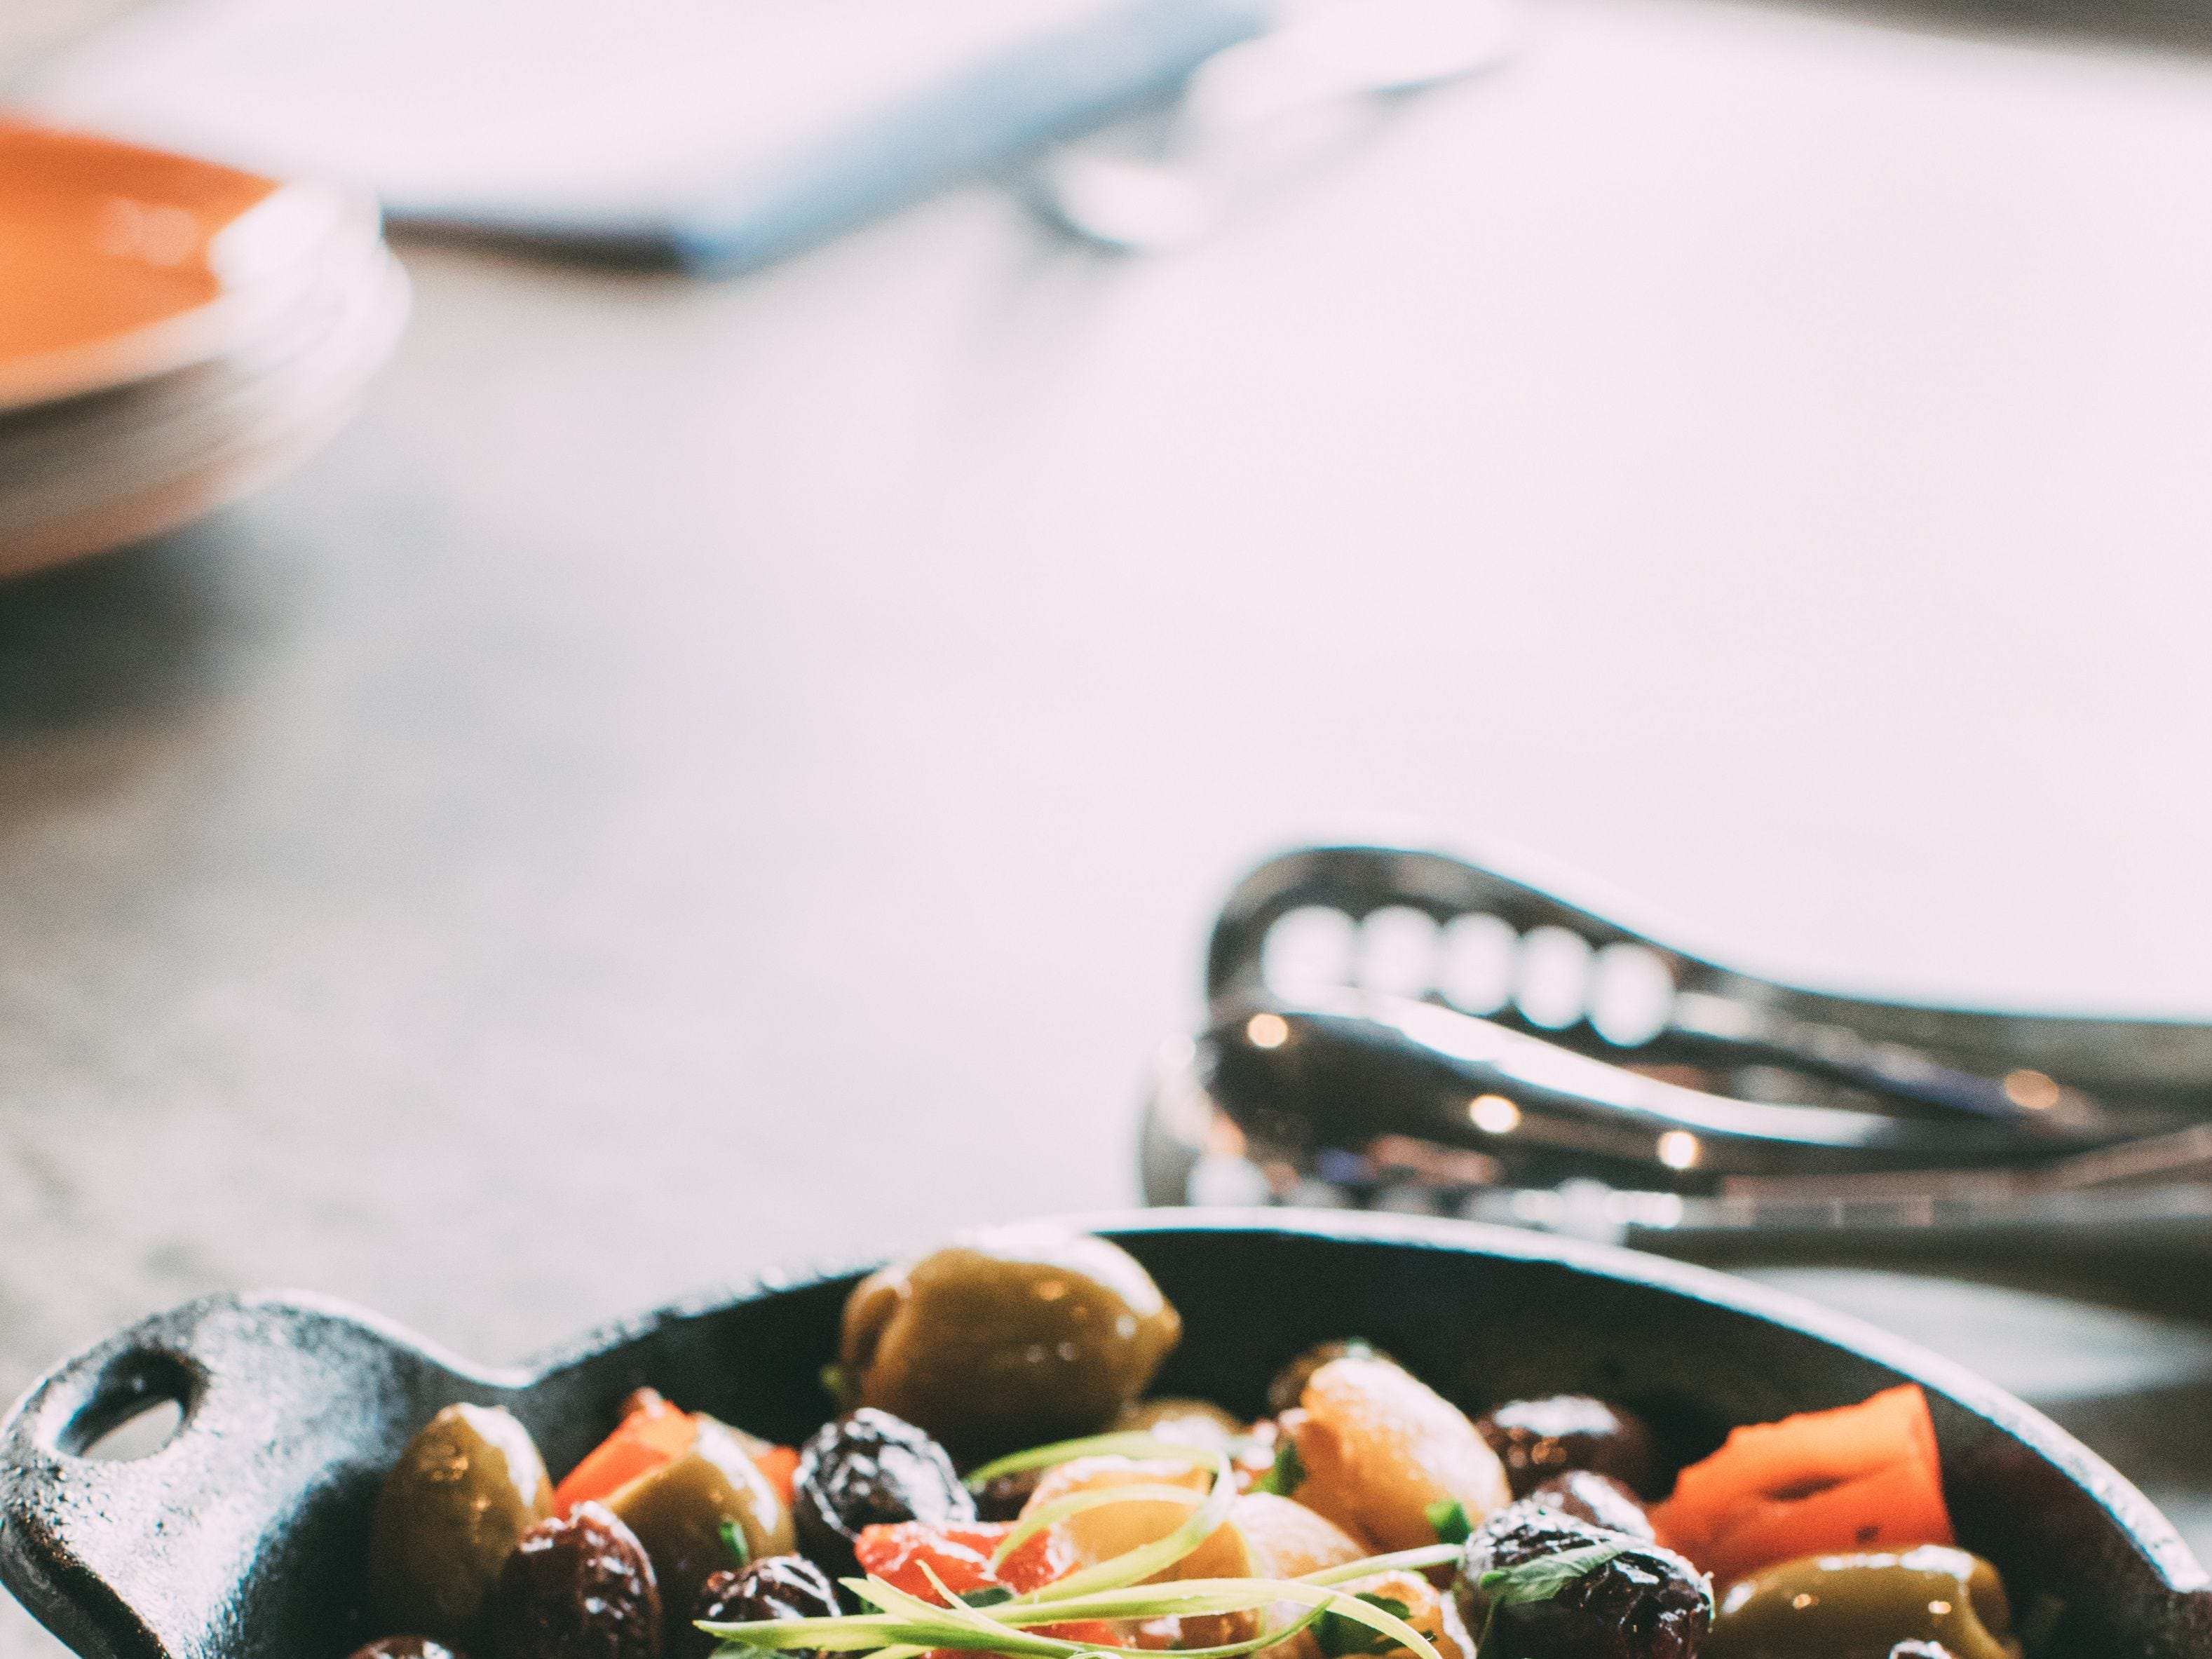 TRES TEMPE | Festive dishes will be served for brunch ($32, $16 for ages 12 and younger) from 10 a.m.-3 p.m. The menuincludes an artisan charcuterie and cheese display;fresh fruit;herb scrambled eggs;the Tres Frittata;lemon ricotta pancakes;Spanish paella with chicken, chorizo and seafood;espresso-rubbed baron of beef; and miniature desserts.DETAILS: 7192 S. Price Road, Tempe. 480-897-5300, trestempe.com.